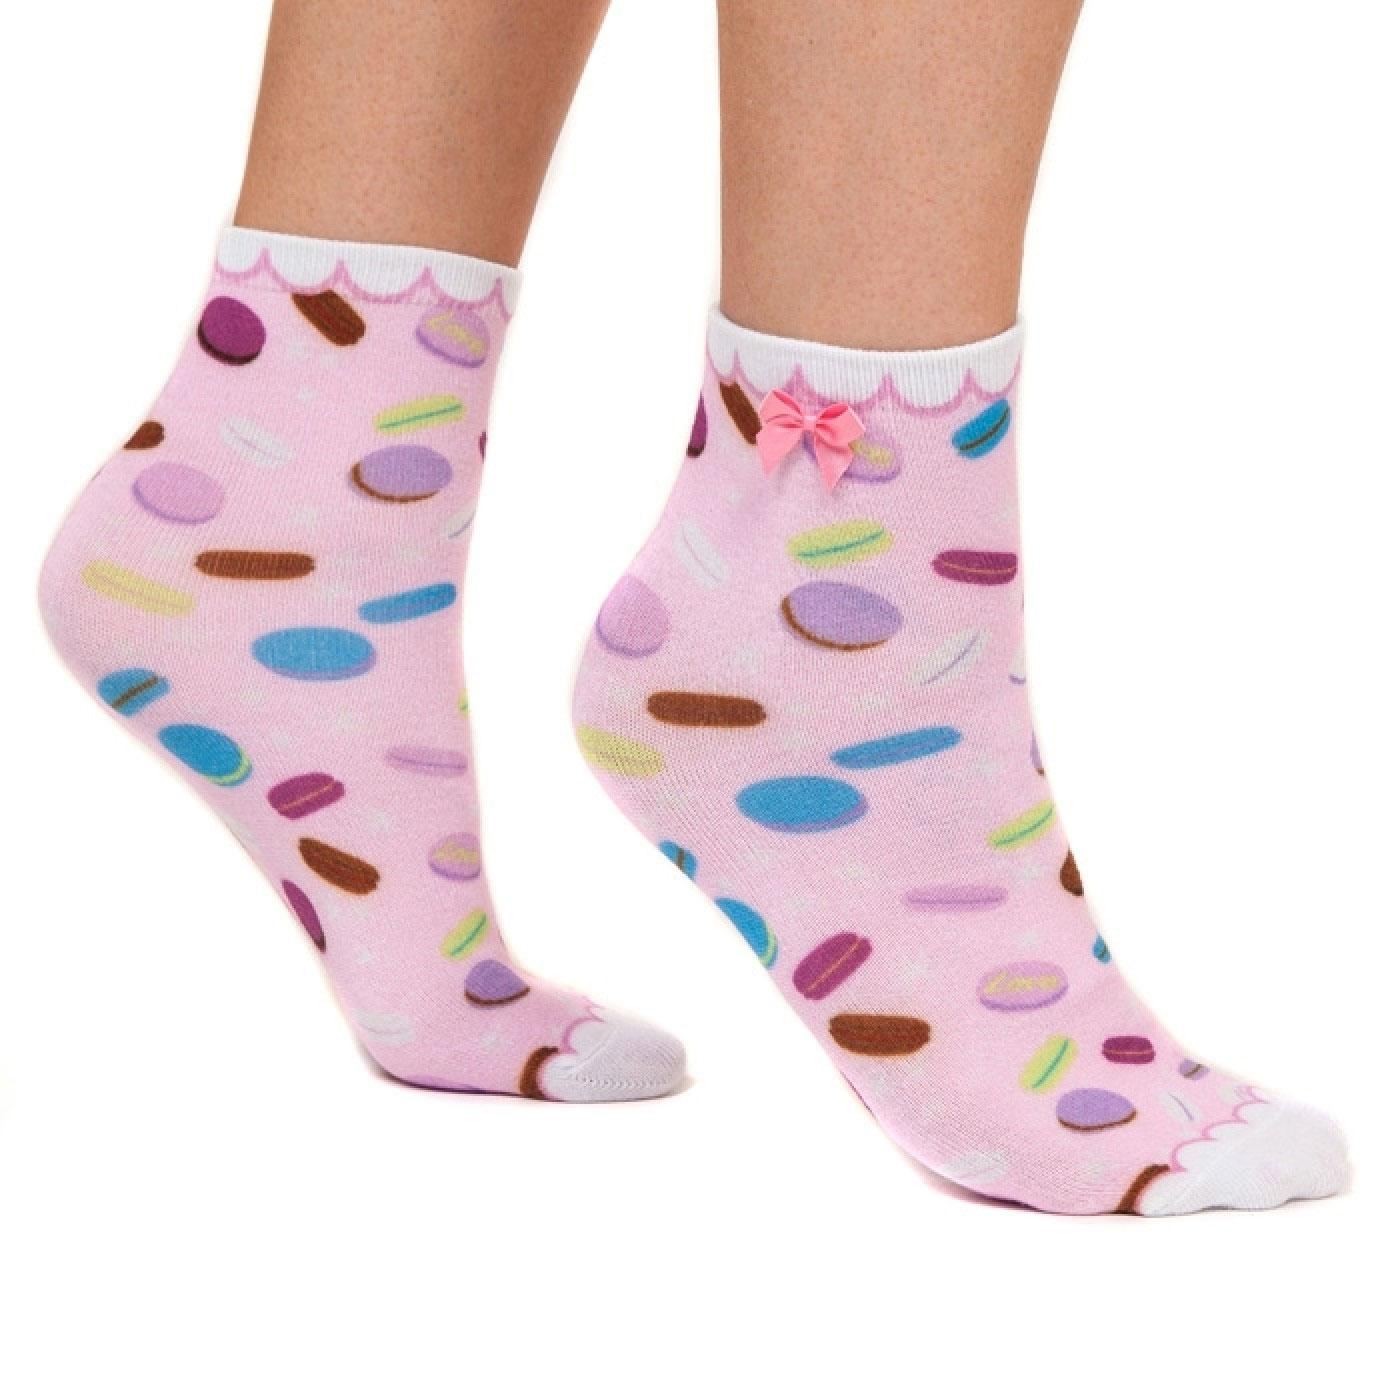 Sweet Treats IRREGULAR CHOICE Retro Macaron Socks